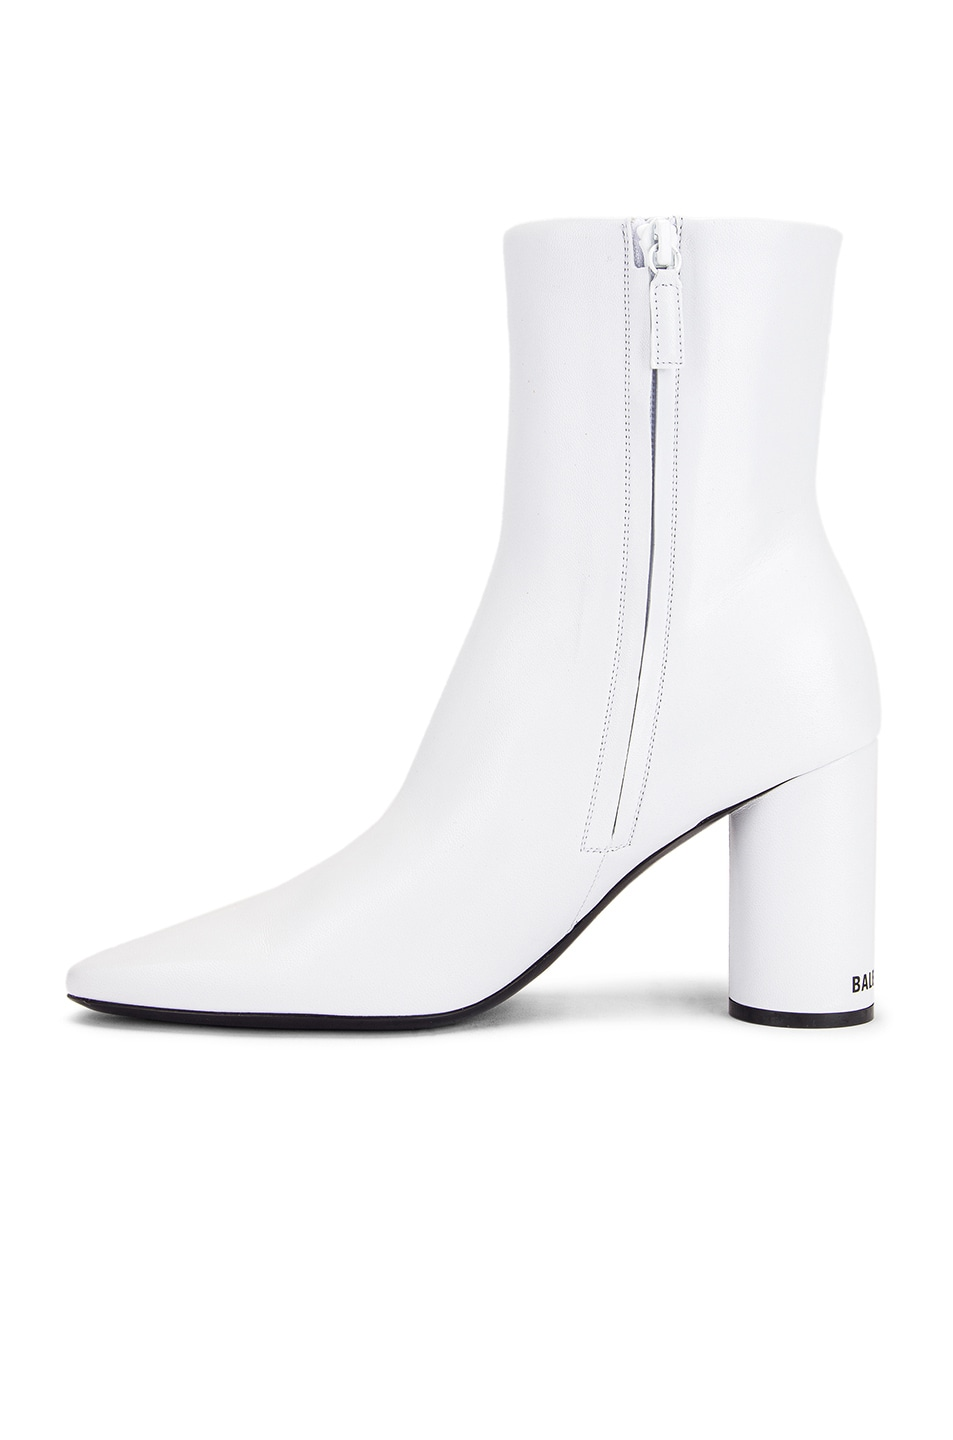 Image 5 of Balenciaga Oval Booties in White & Black